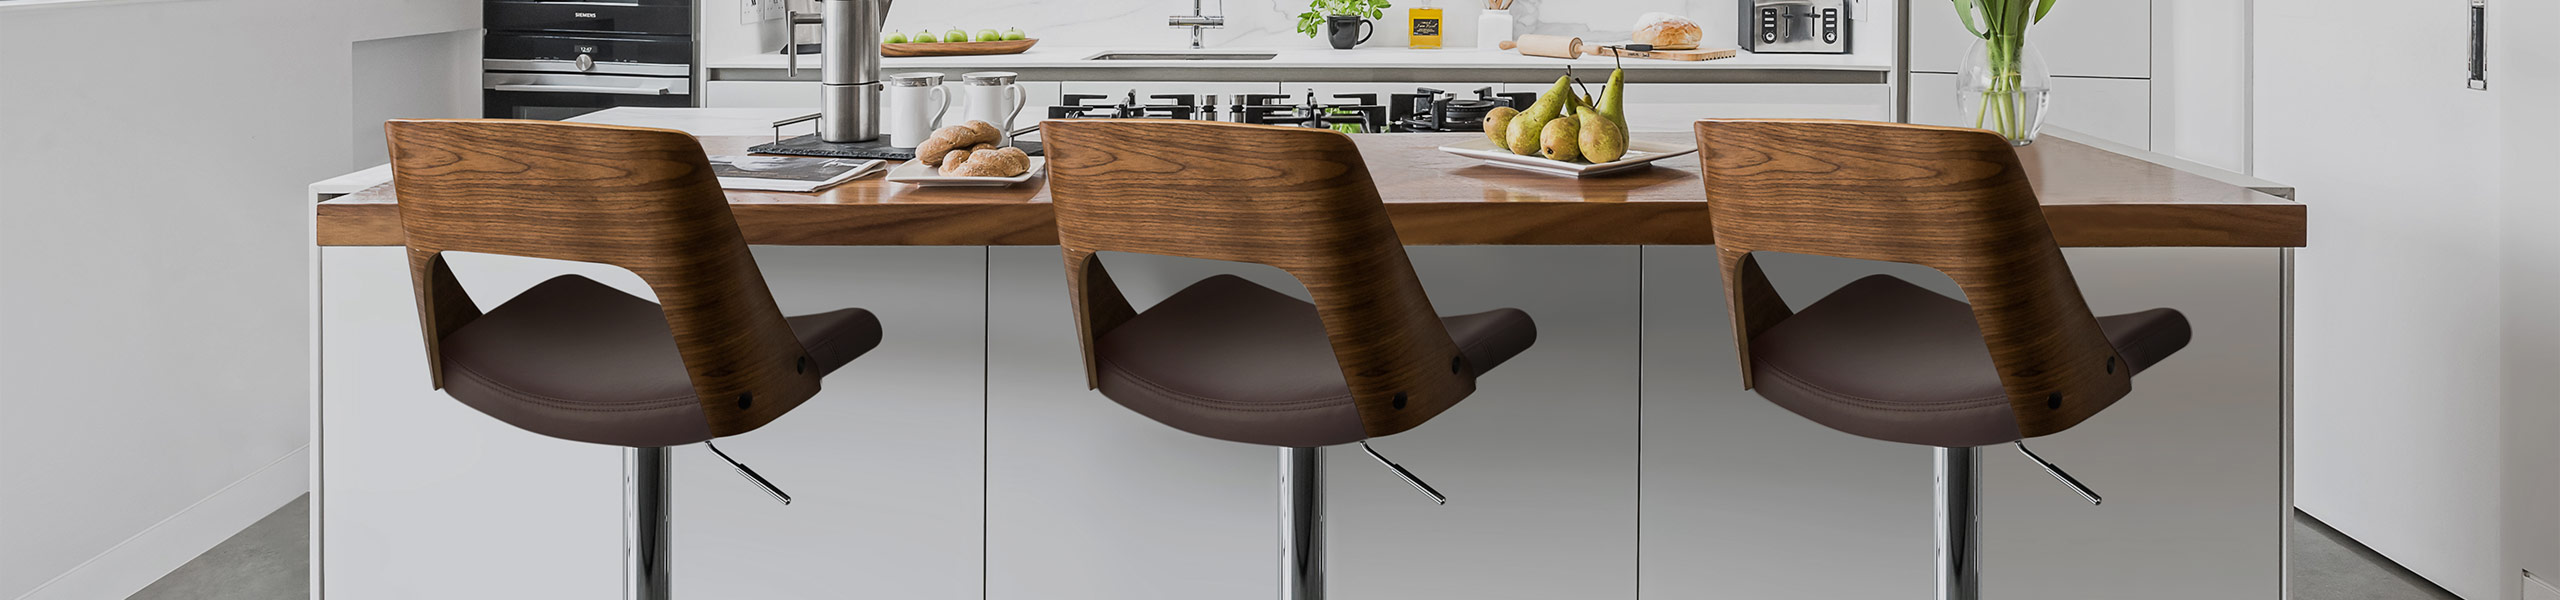 Carmen Leather Bar Stool Walnut & Brown Video Banner